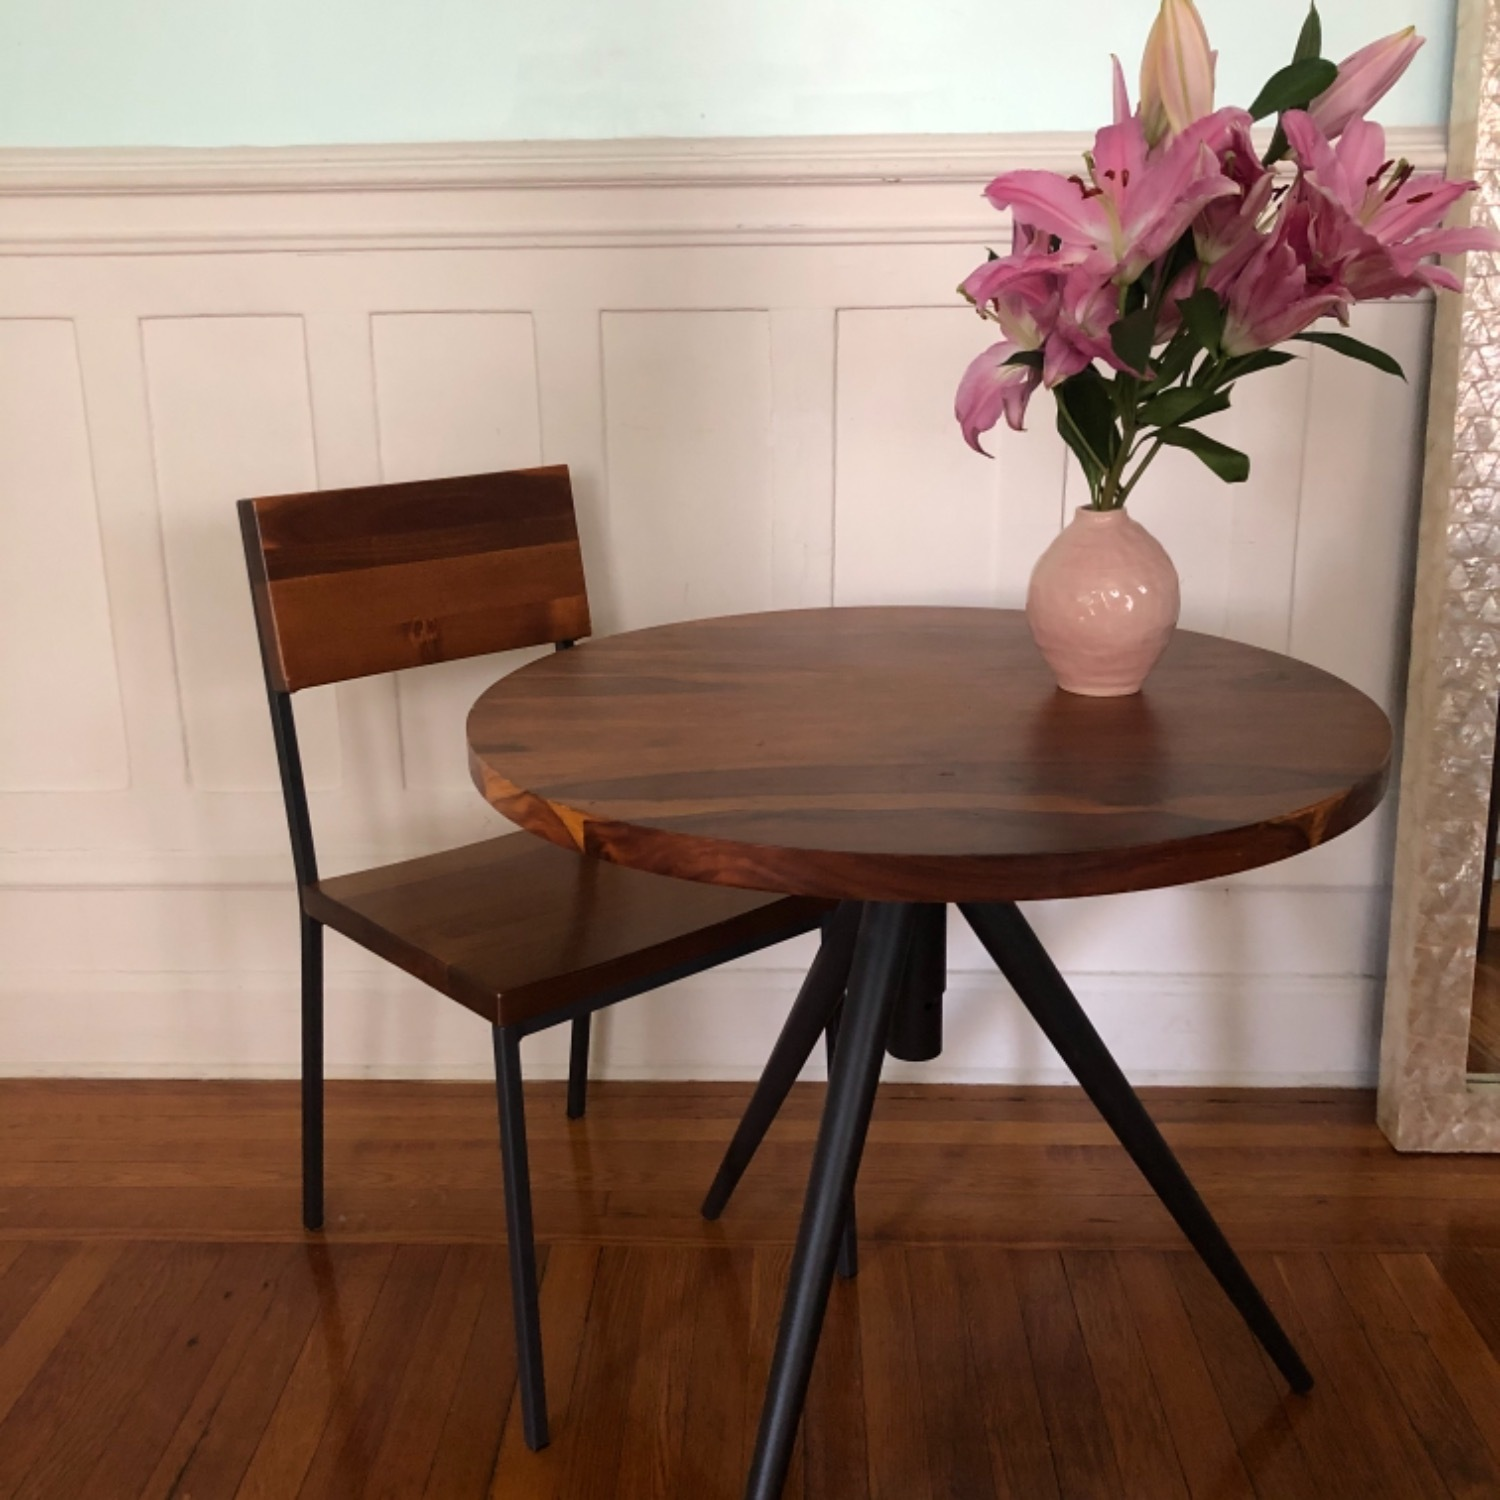 West Elm Bistro Table and Chairs - image-8